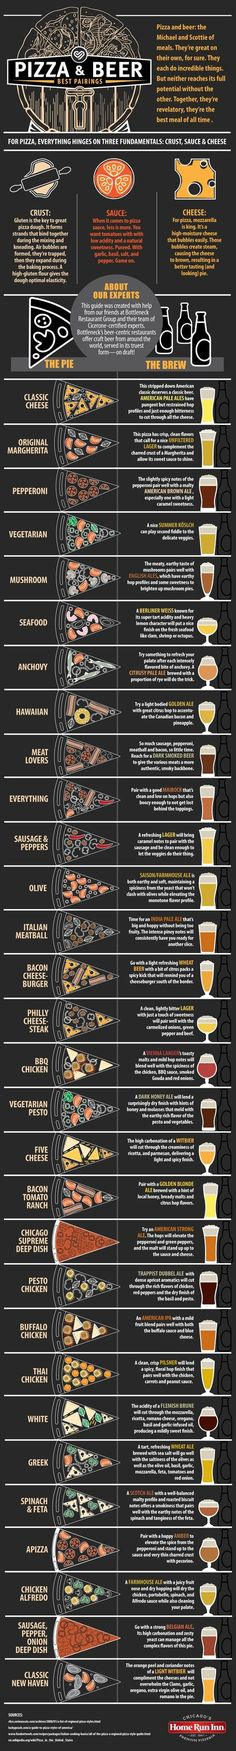 Beer is great and pizza is amazing, but when you have both at the same time it�s one of the best meals known to man. Still, the subtle, nuanced flavors of different beers can be even better with the right pizza pairing.